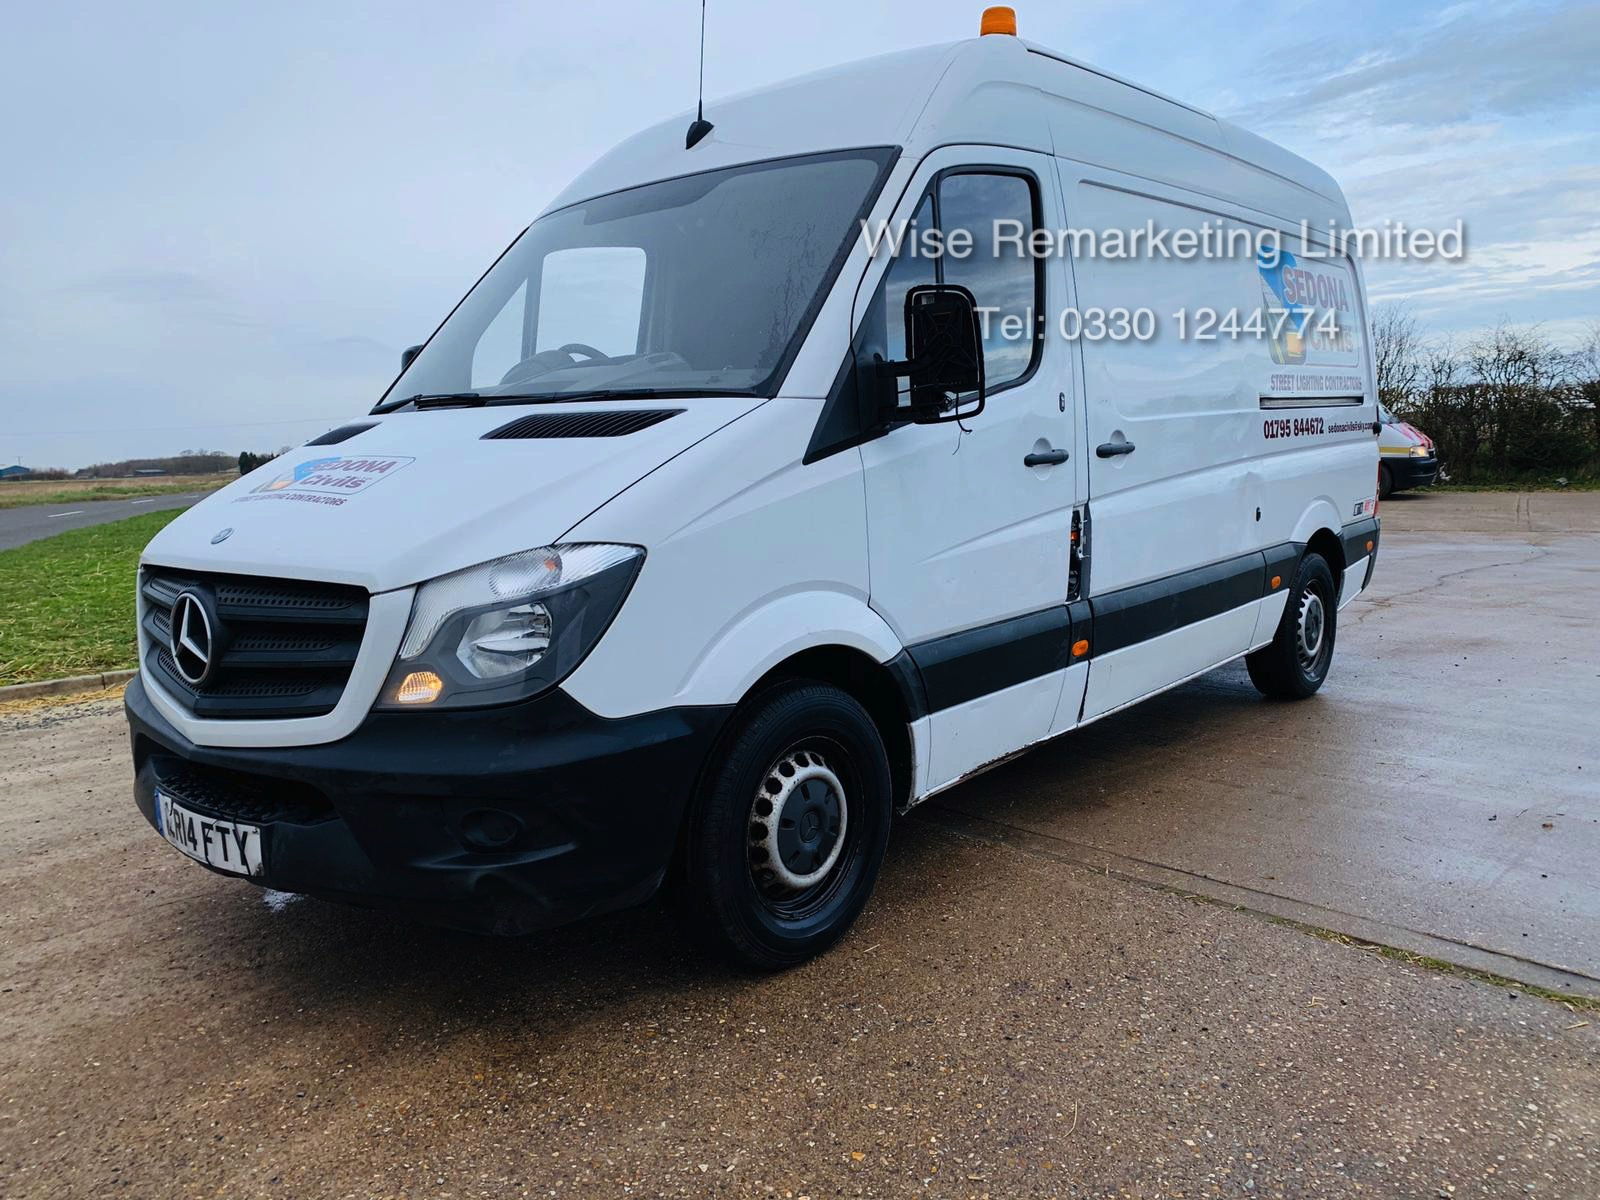 Mercedes Sprinter 313 2.1 CDI - 2014 14 Reg - 6 Speed - Ply Lined - Company Owned - Image 2 of 18